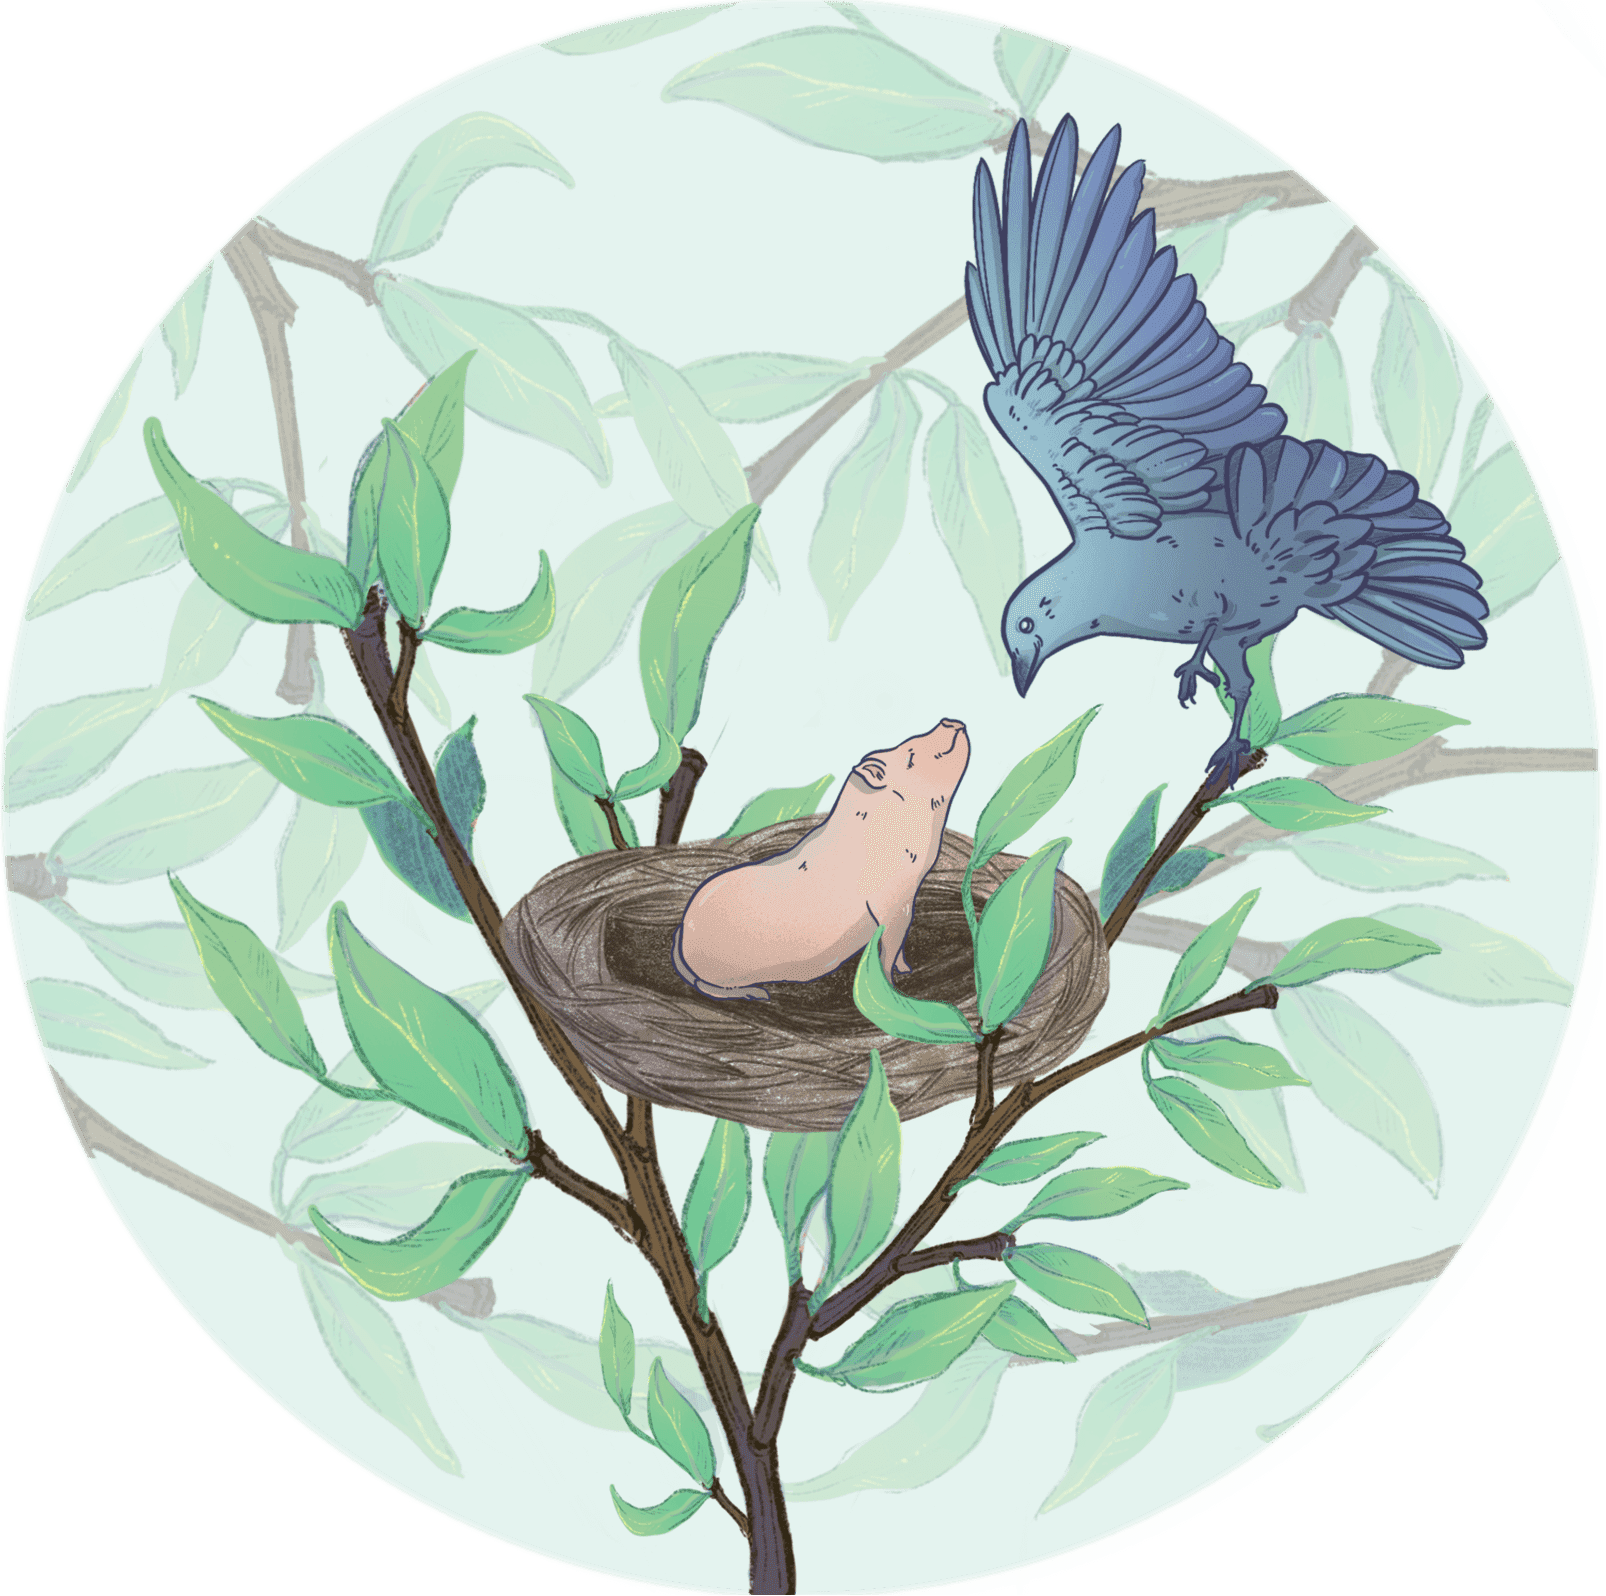 Illustration of a bird next to a tiny pig in its nest